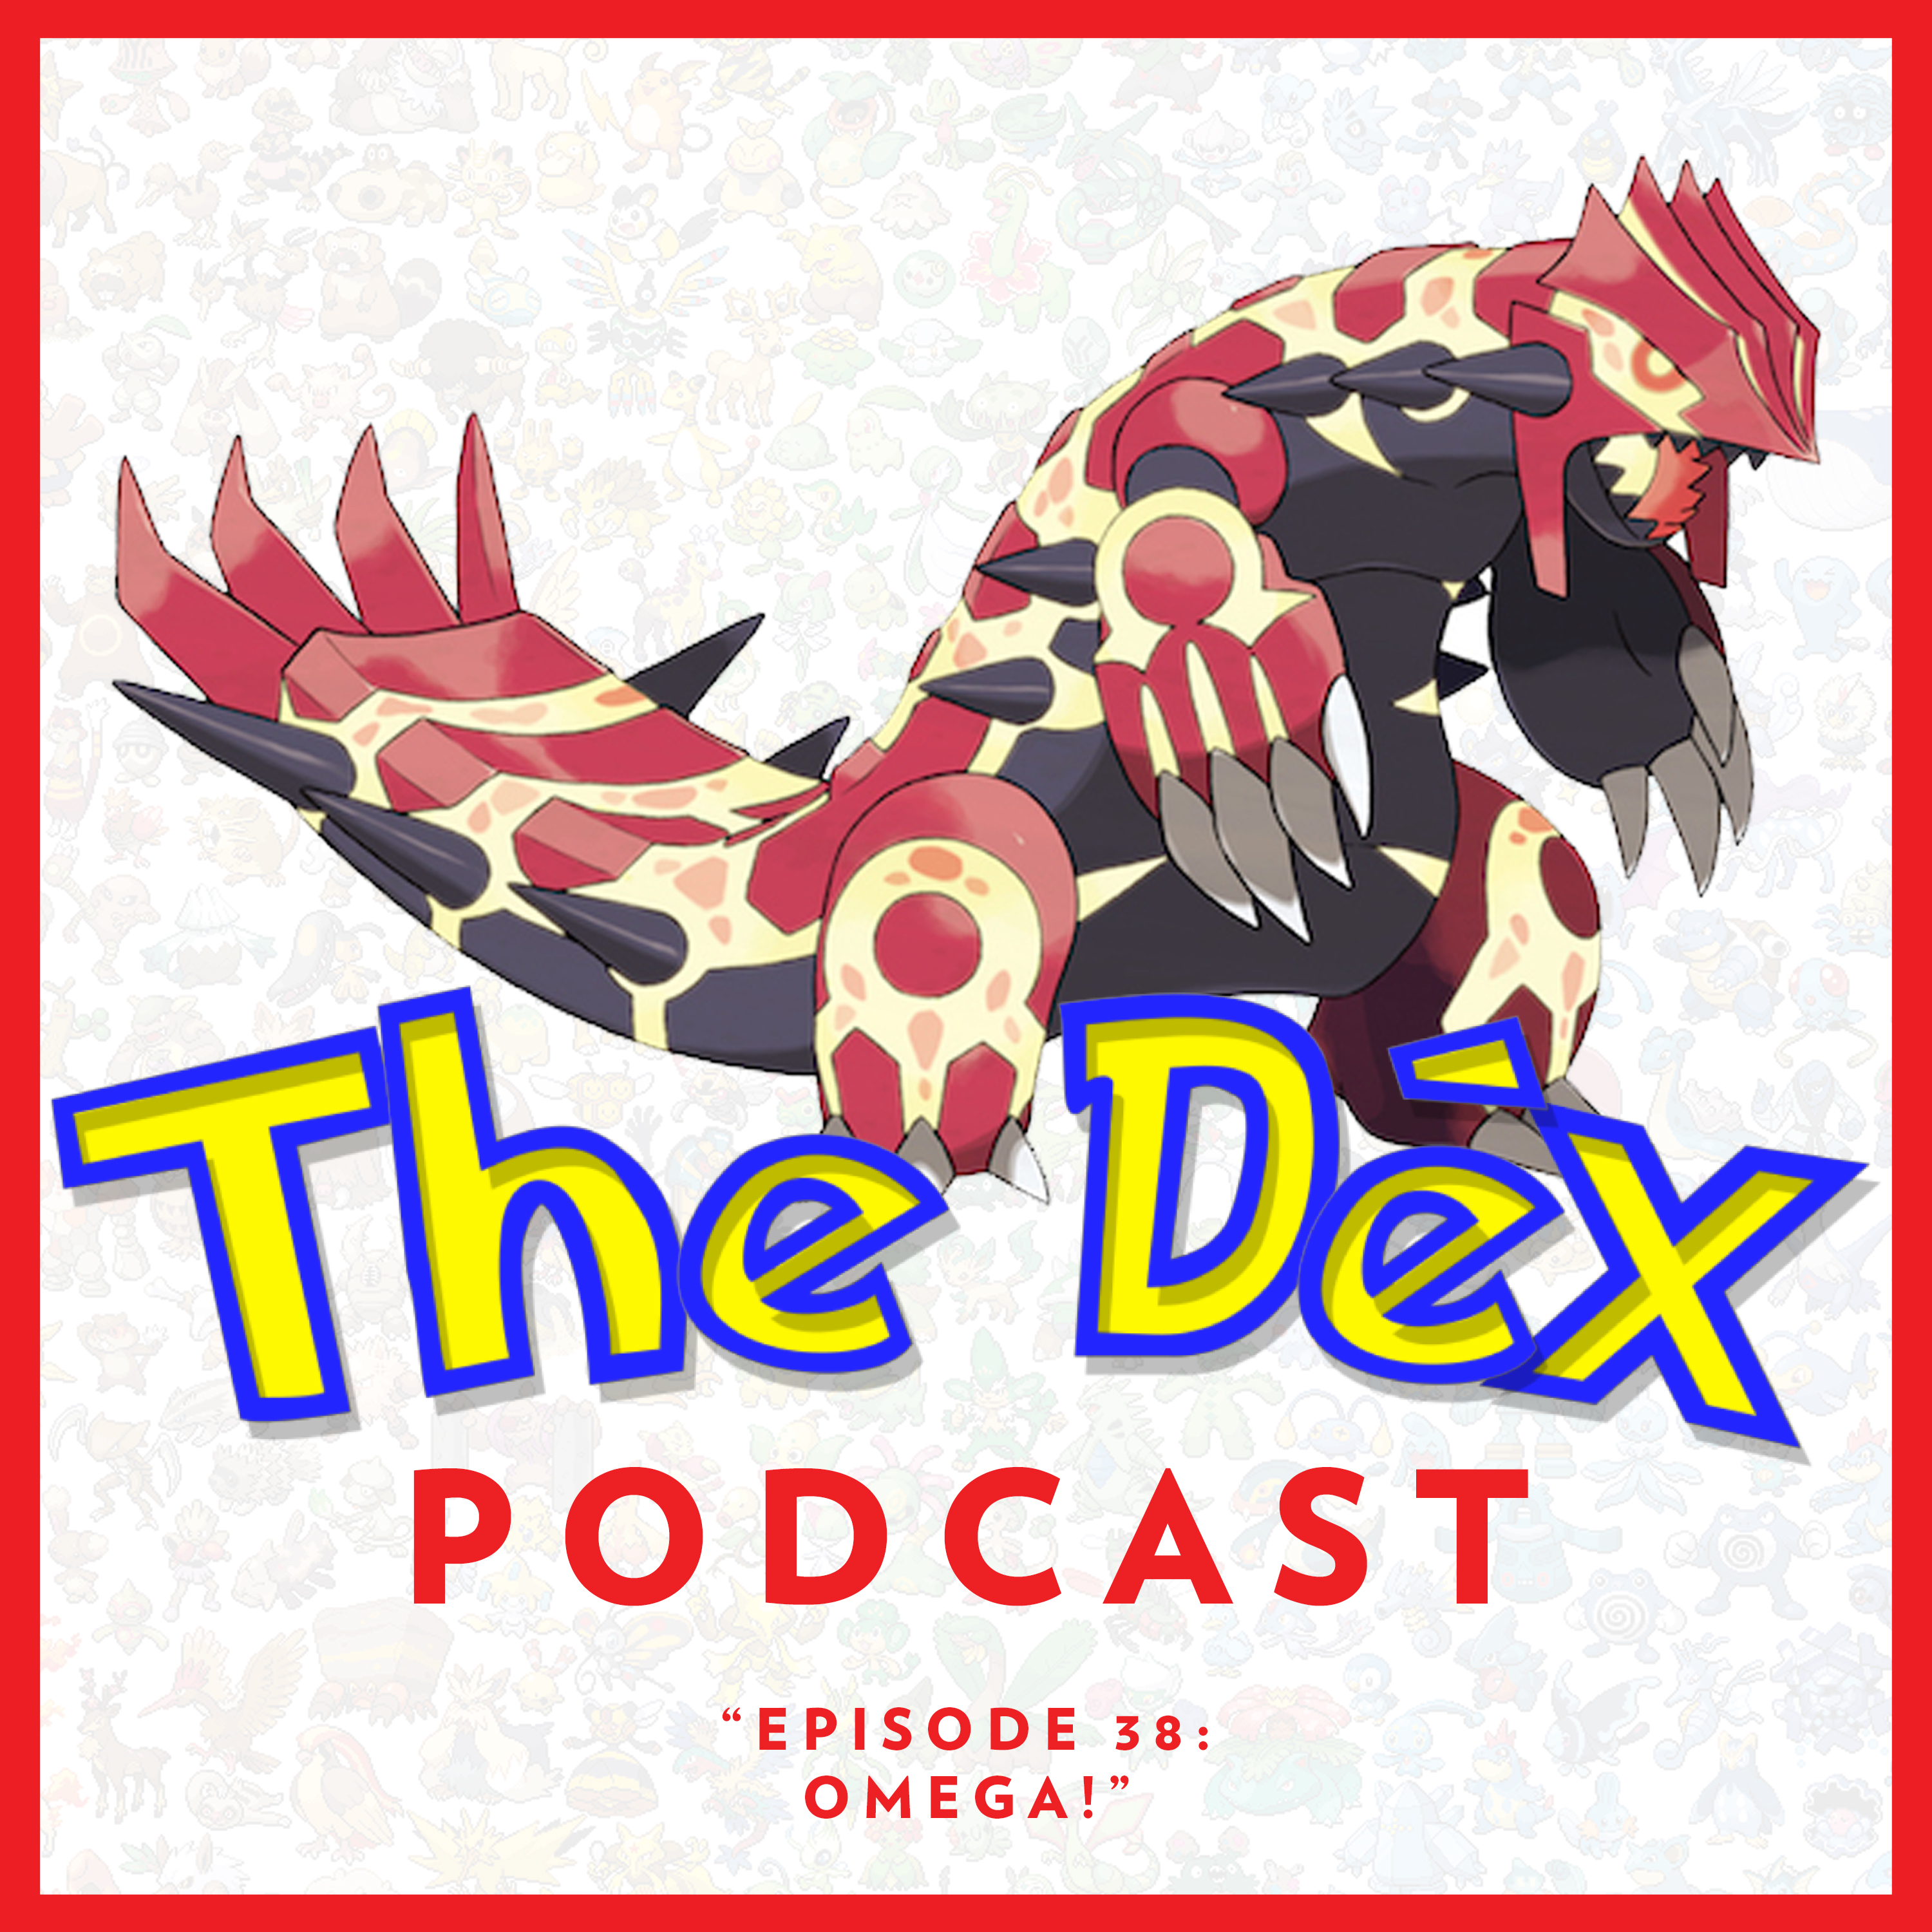 The Dex! Podcast #38: Omega!